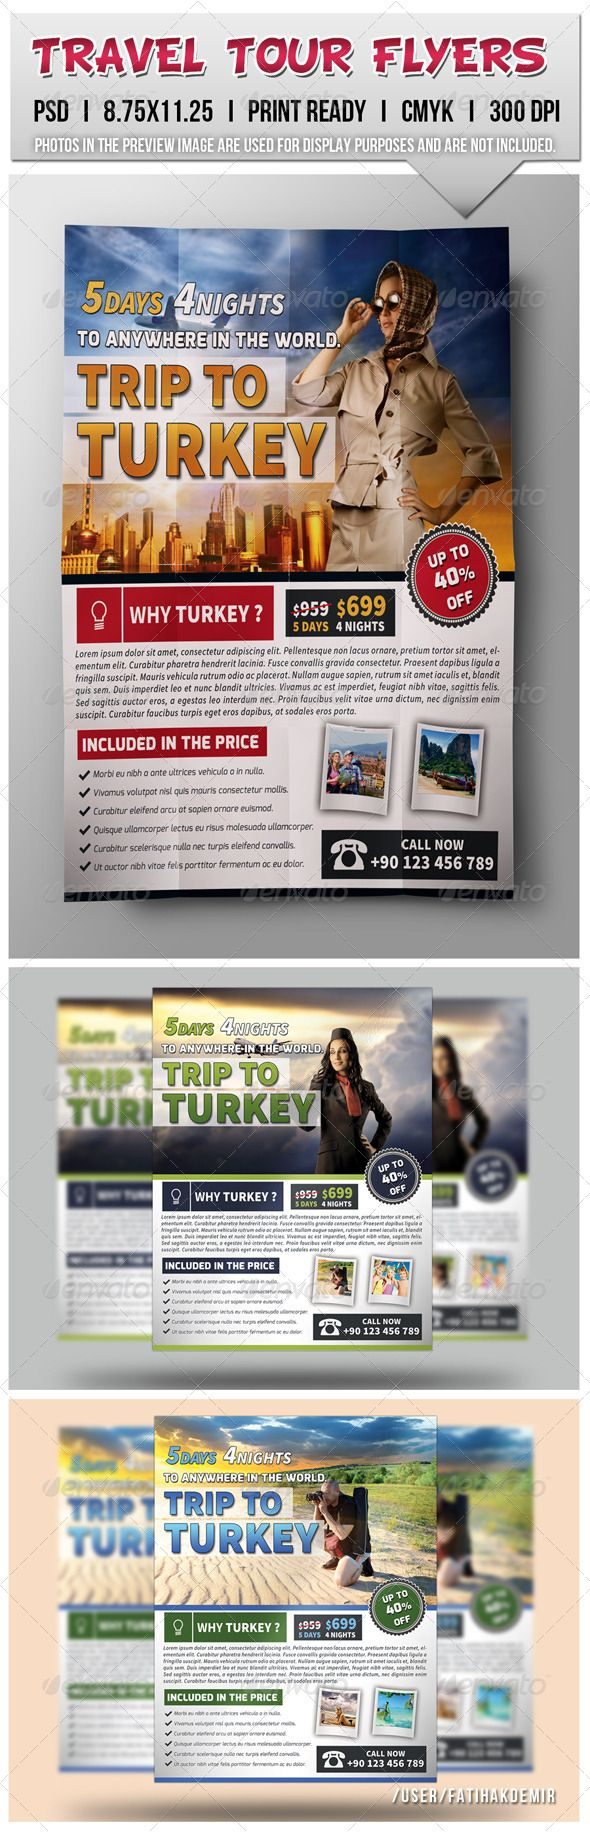 Travel Tour Flyers The 290 best Travel